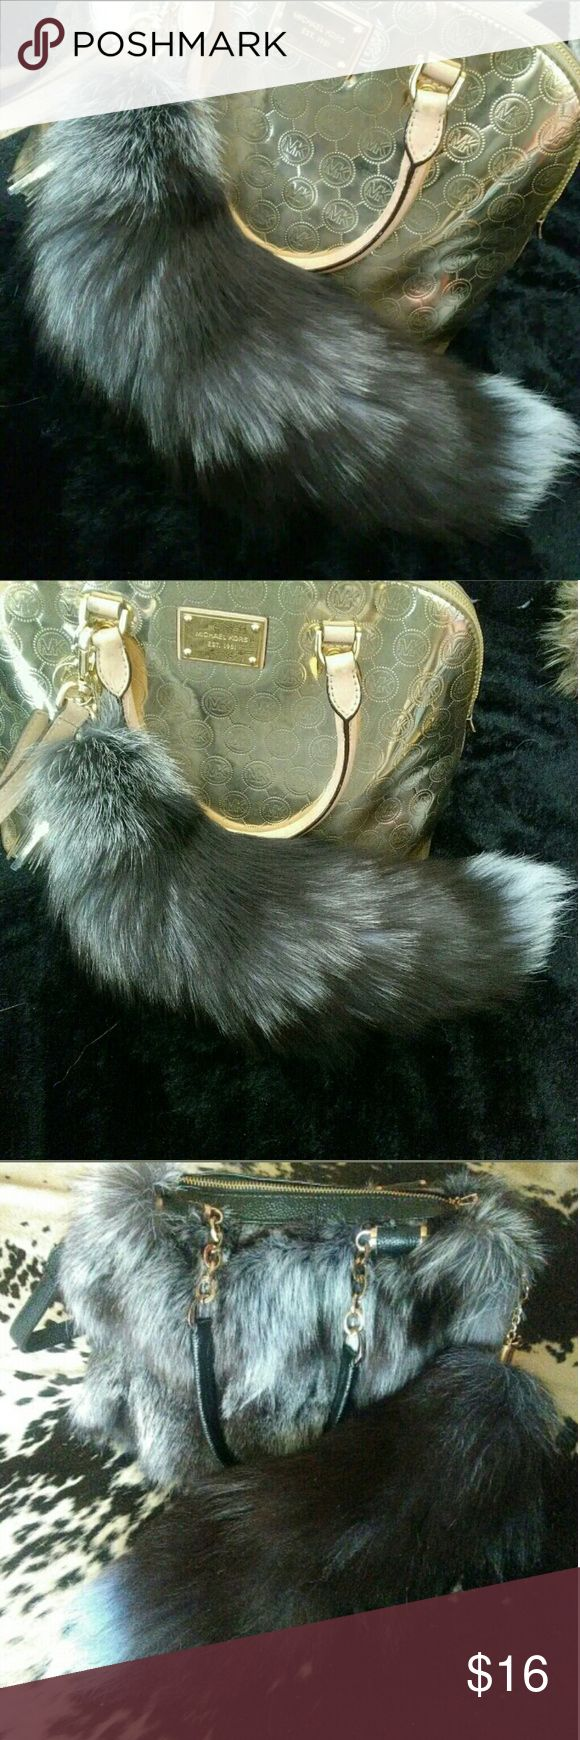 One Silver Fox Tail Keychain Genuine Real Fur Also on EBY @katisiepiersk0  One silver fox tail keychain. 10 available. All have been professionally tanned, brightened and toned with a pale blue/violet. You will receive one of the tails pictured. I have a seperate listing for all 10 if you would like to buy in bulk Accessories